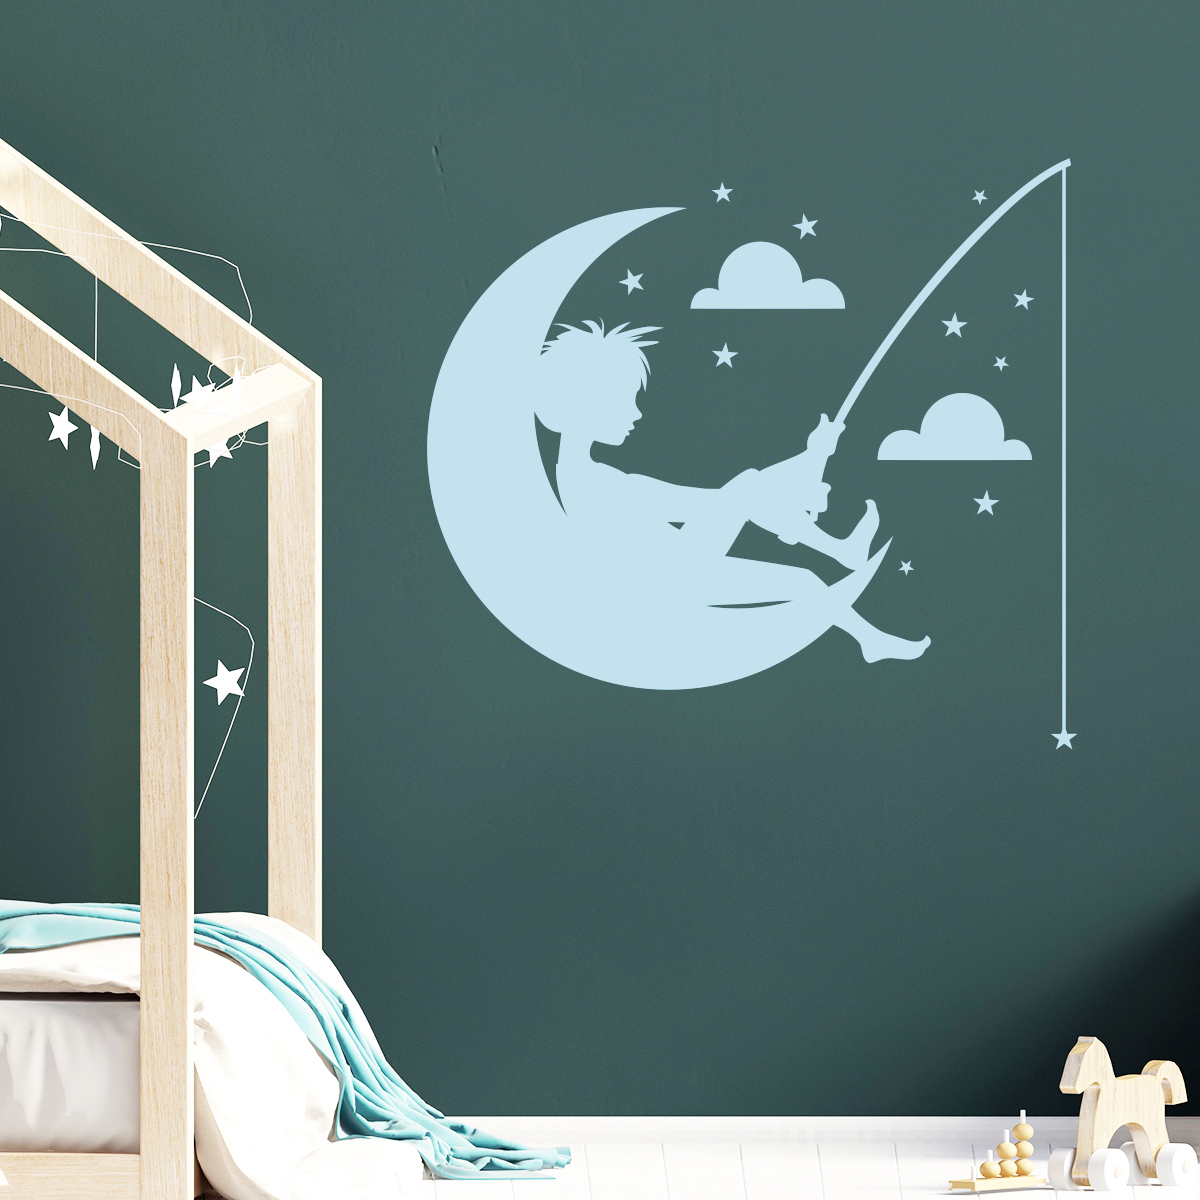 sticker lune toiles nuage enfant p chant stickers. Black Bedroom Furniture Sets. Home Design Ideas